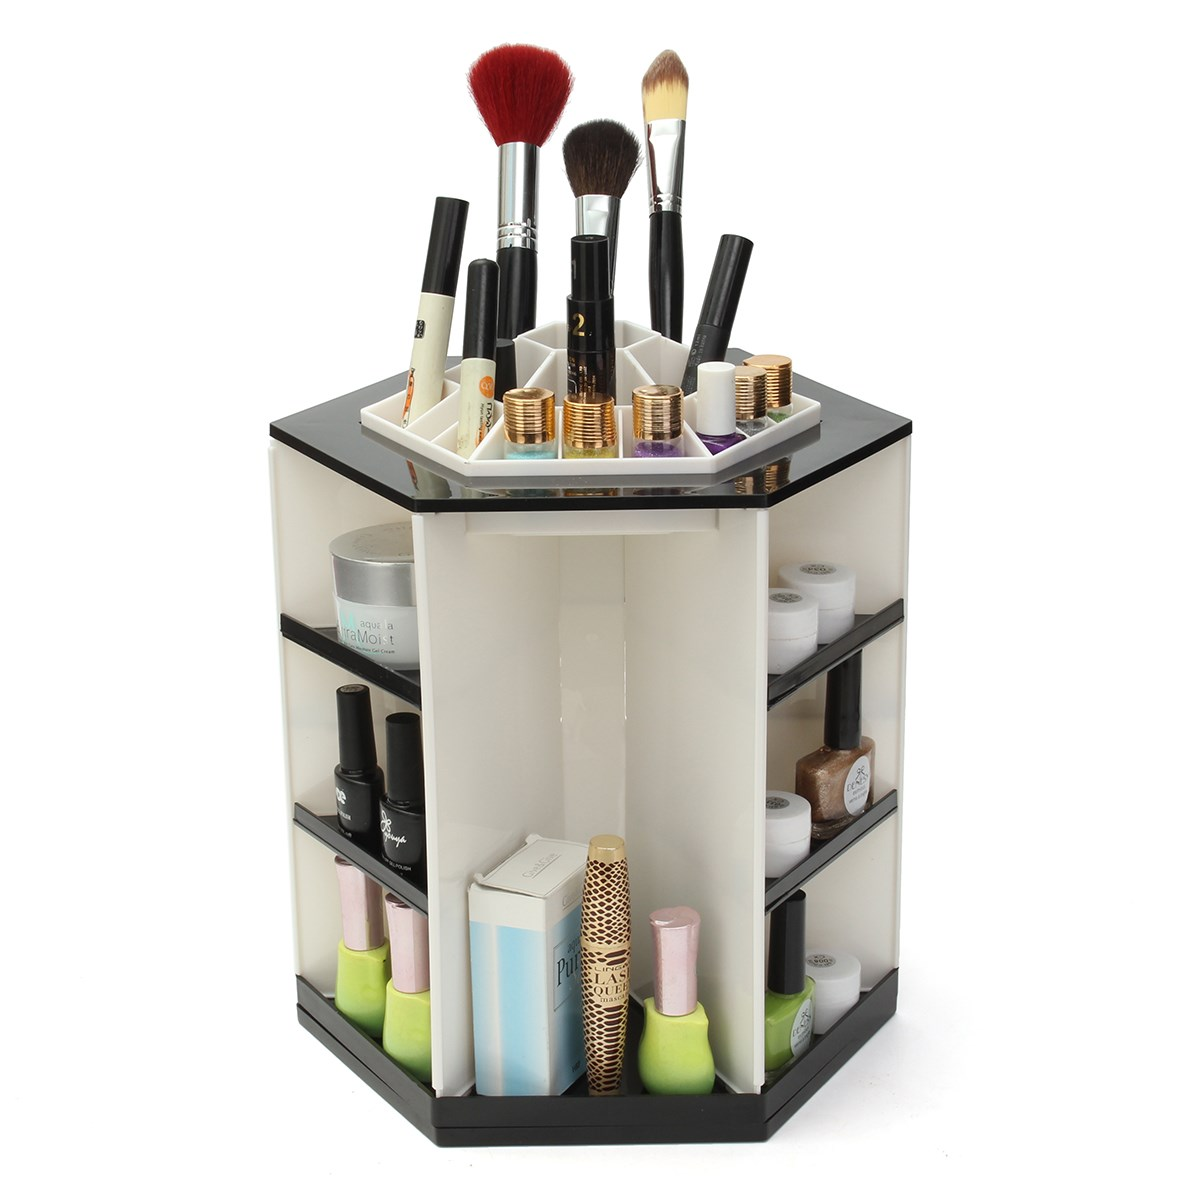 360 Degree Rotating Professional Cosmetic Makeup Organizer Make Up Storage Display Cosmetics Stand Holder For Makeup Brush ems free shipping 3d photo shop display rotating turntable 360 degree mannequin photography stand